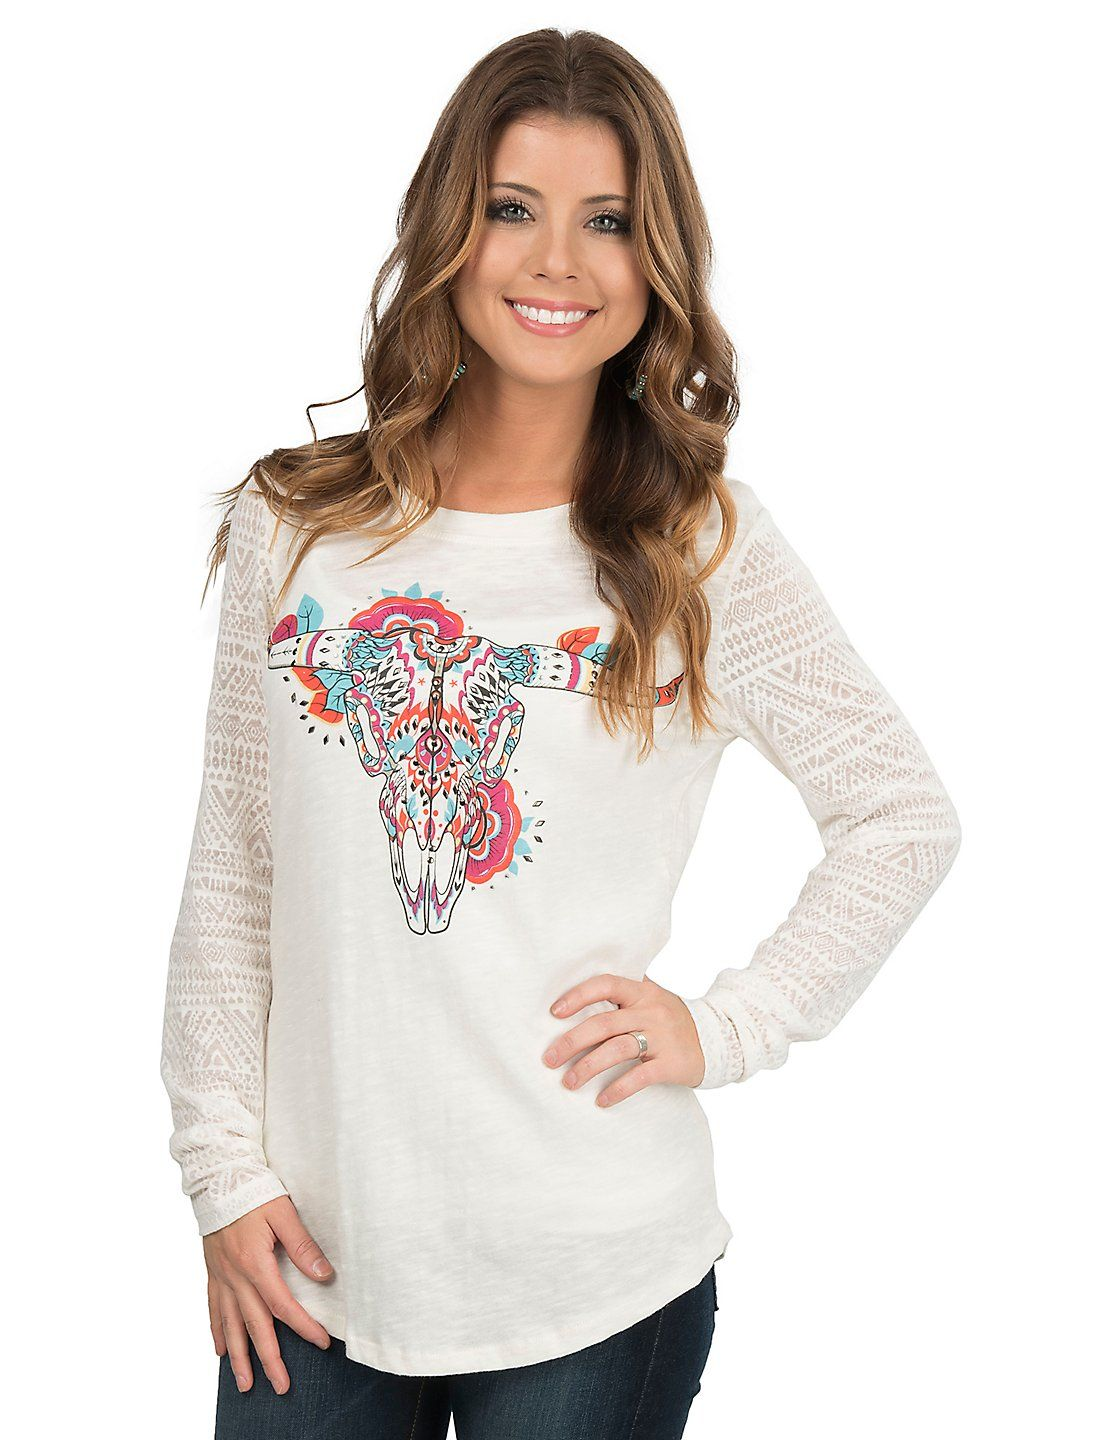 f573ec6317 Ariat Women's White with Multi Colored Steer Head Screen Print with Rhinestone  Studs with Sheer Long Sleeve Casual Knit Top | Cavender's